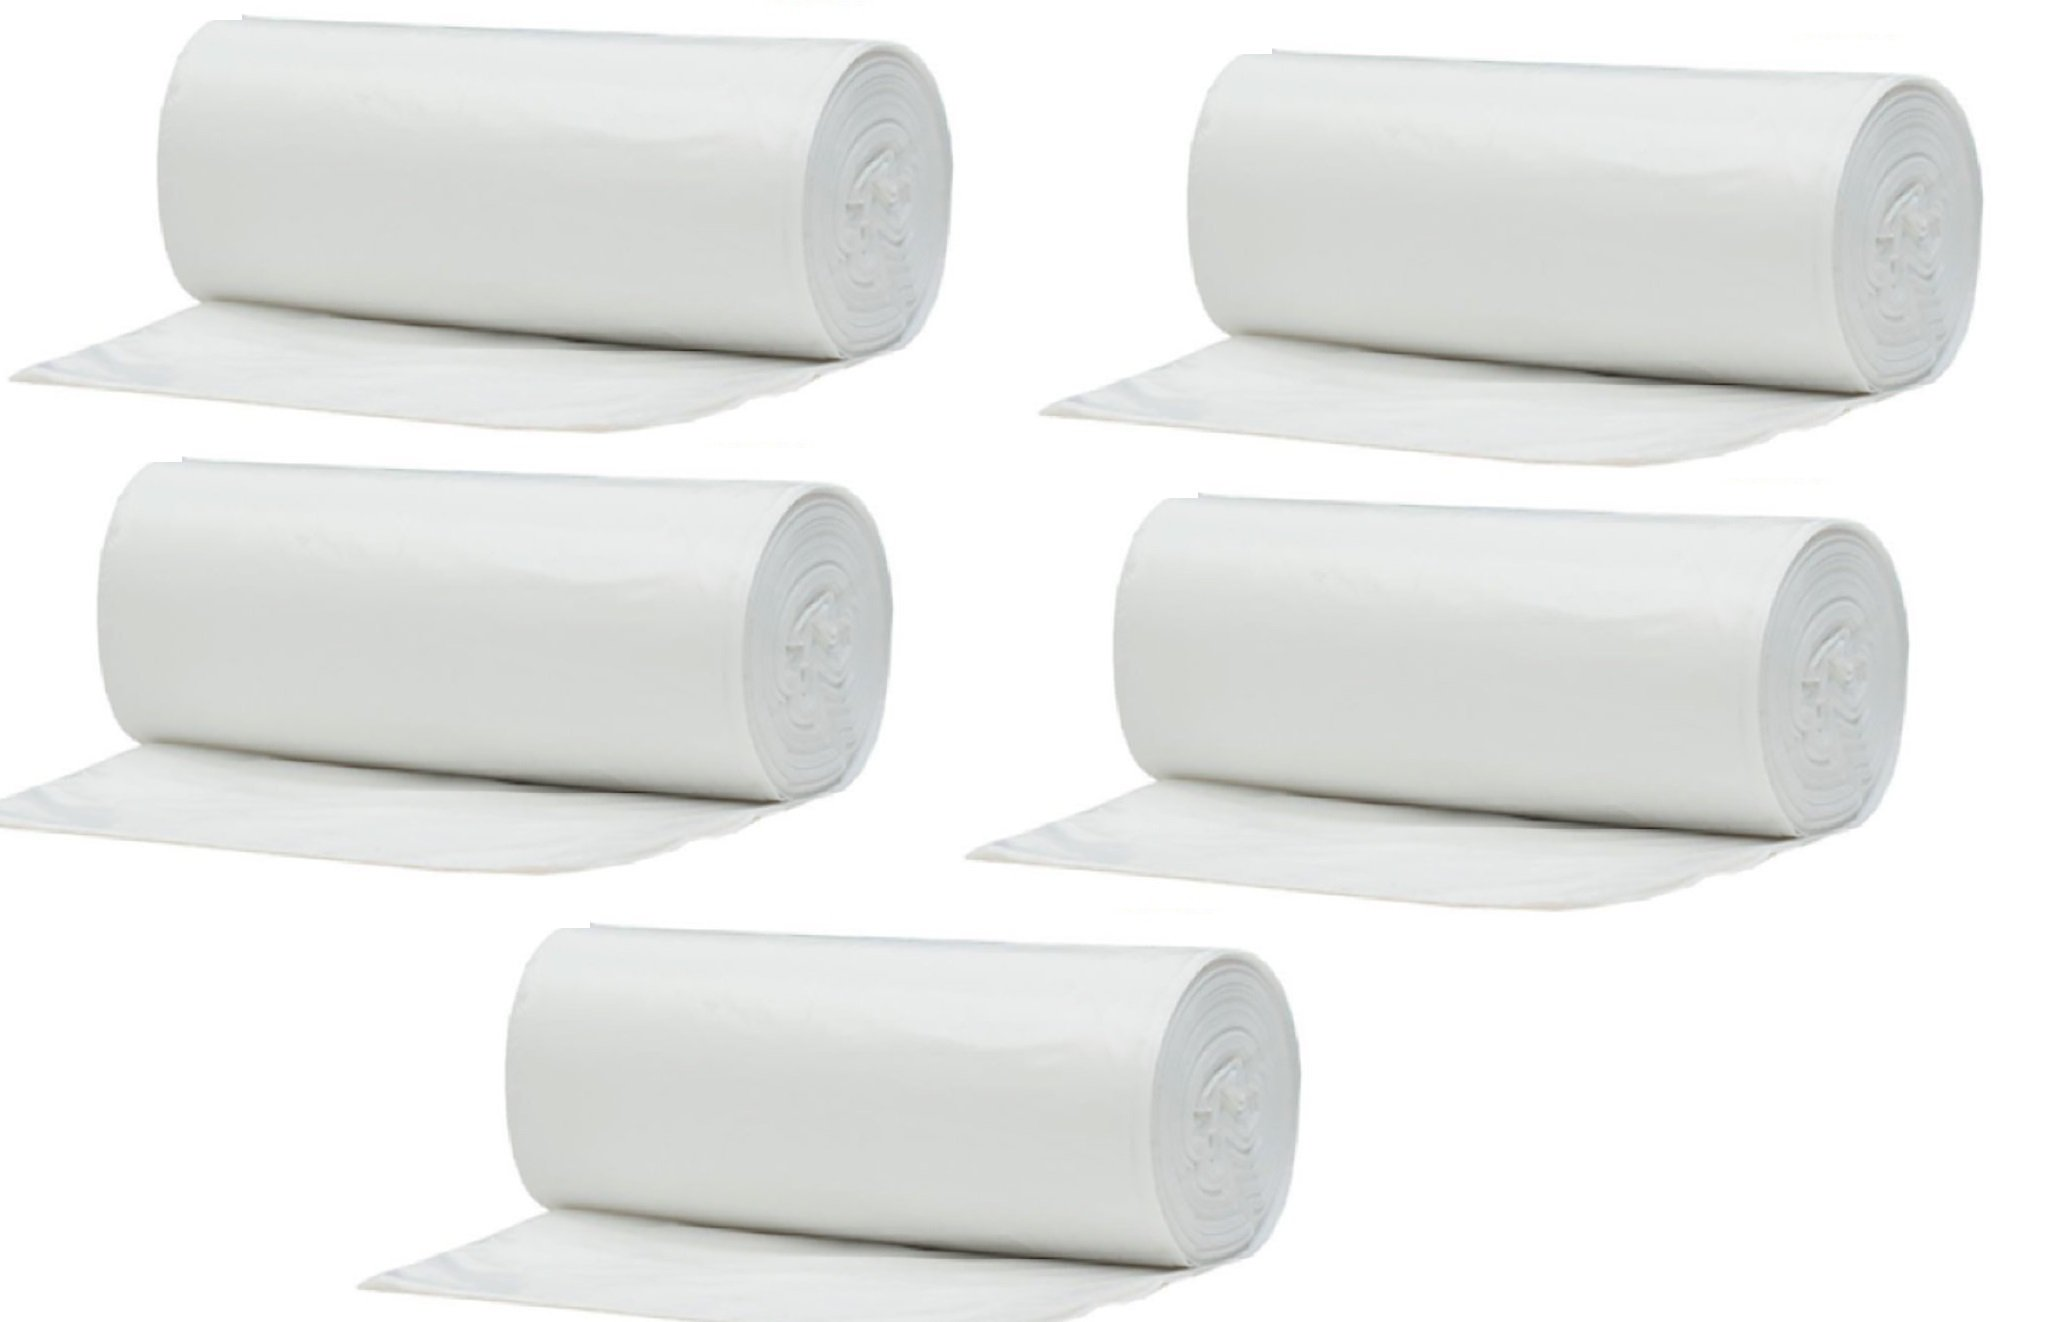 Muscle Bag - 10 Gallon Durable Wastebasket Trash Bags, 5 Rolls of 25 Each, Total of 125 Bags